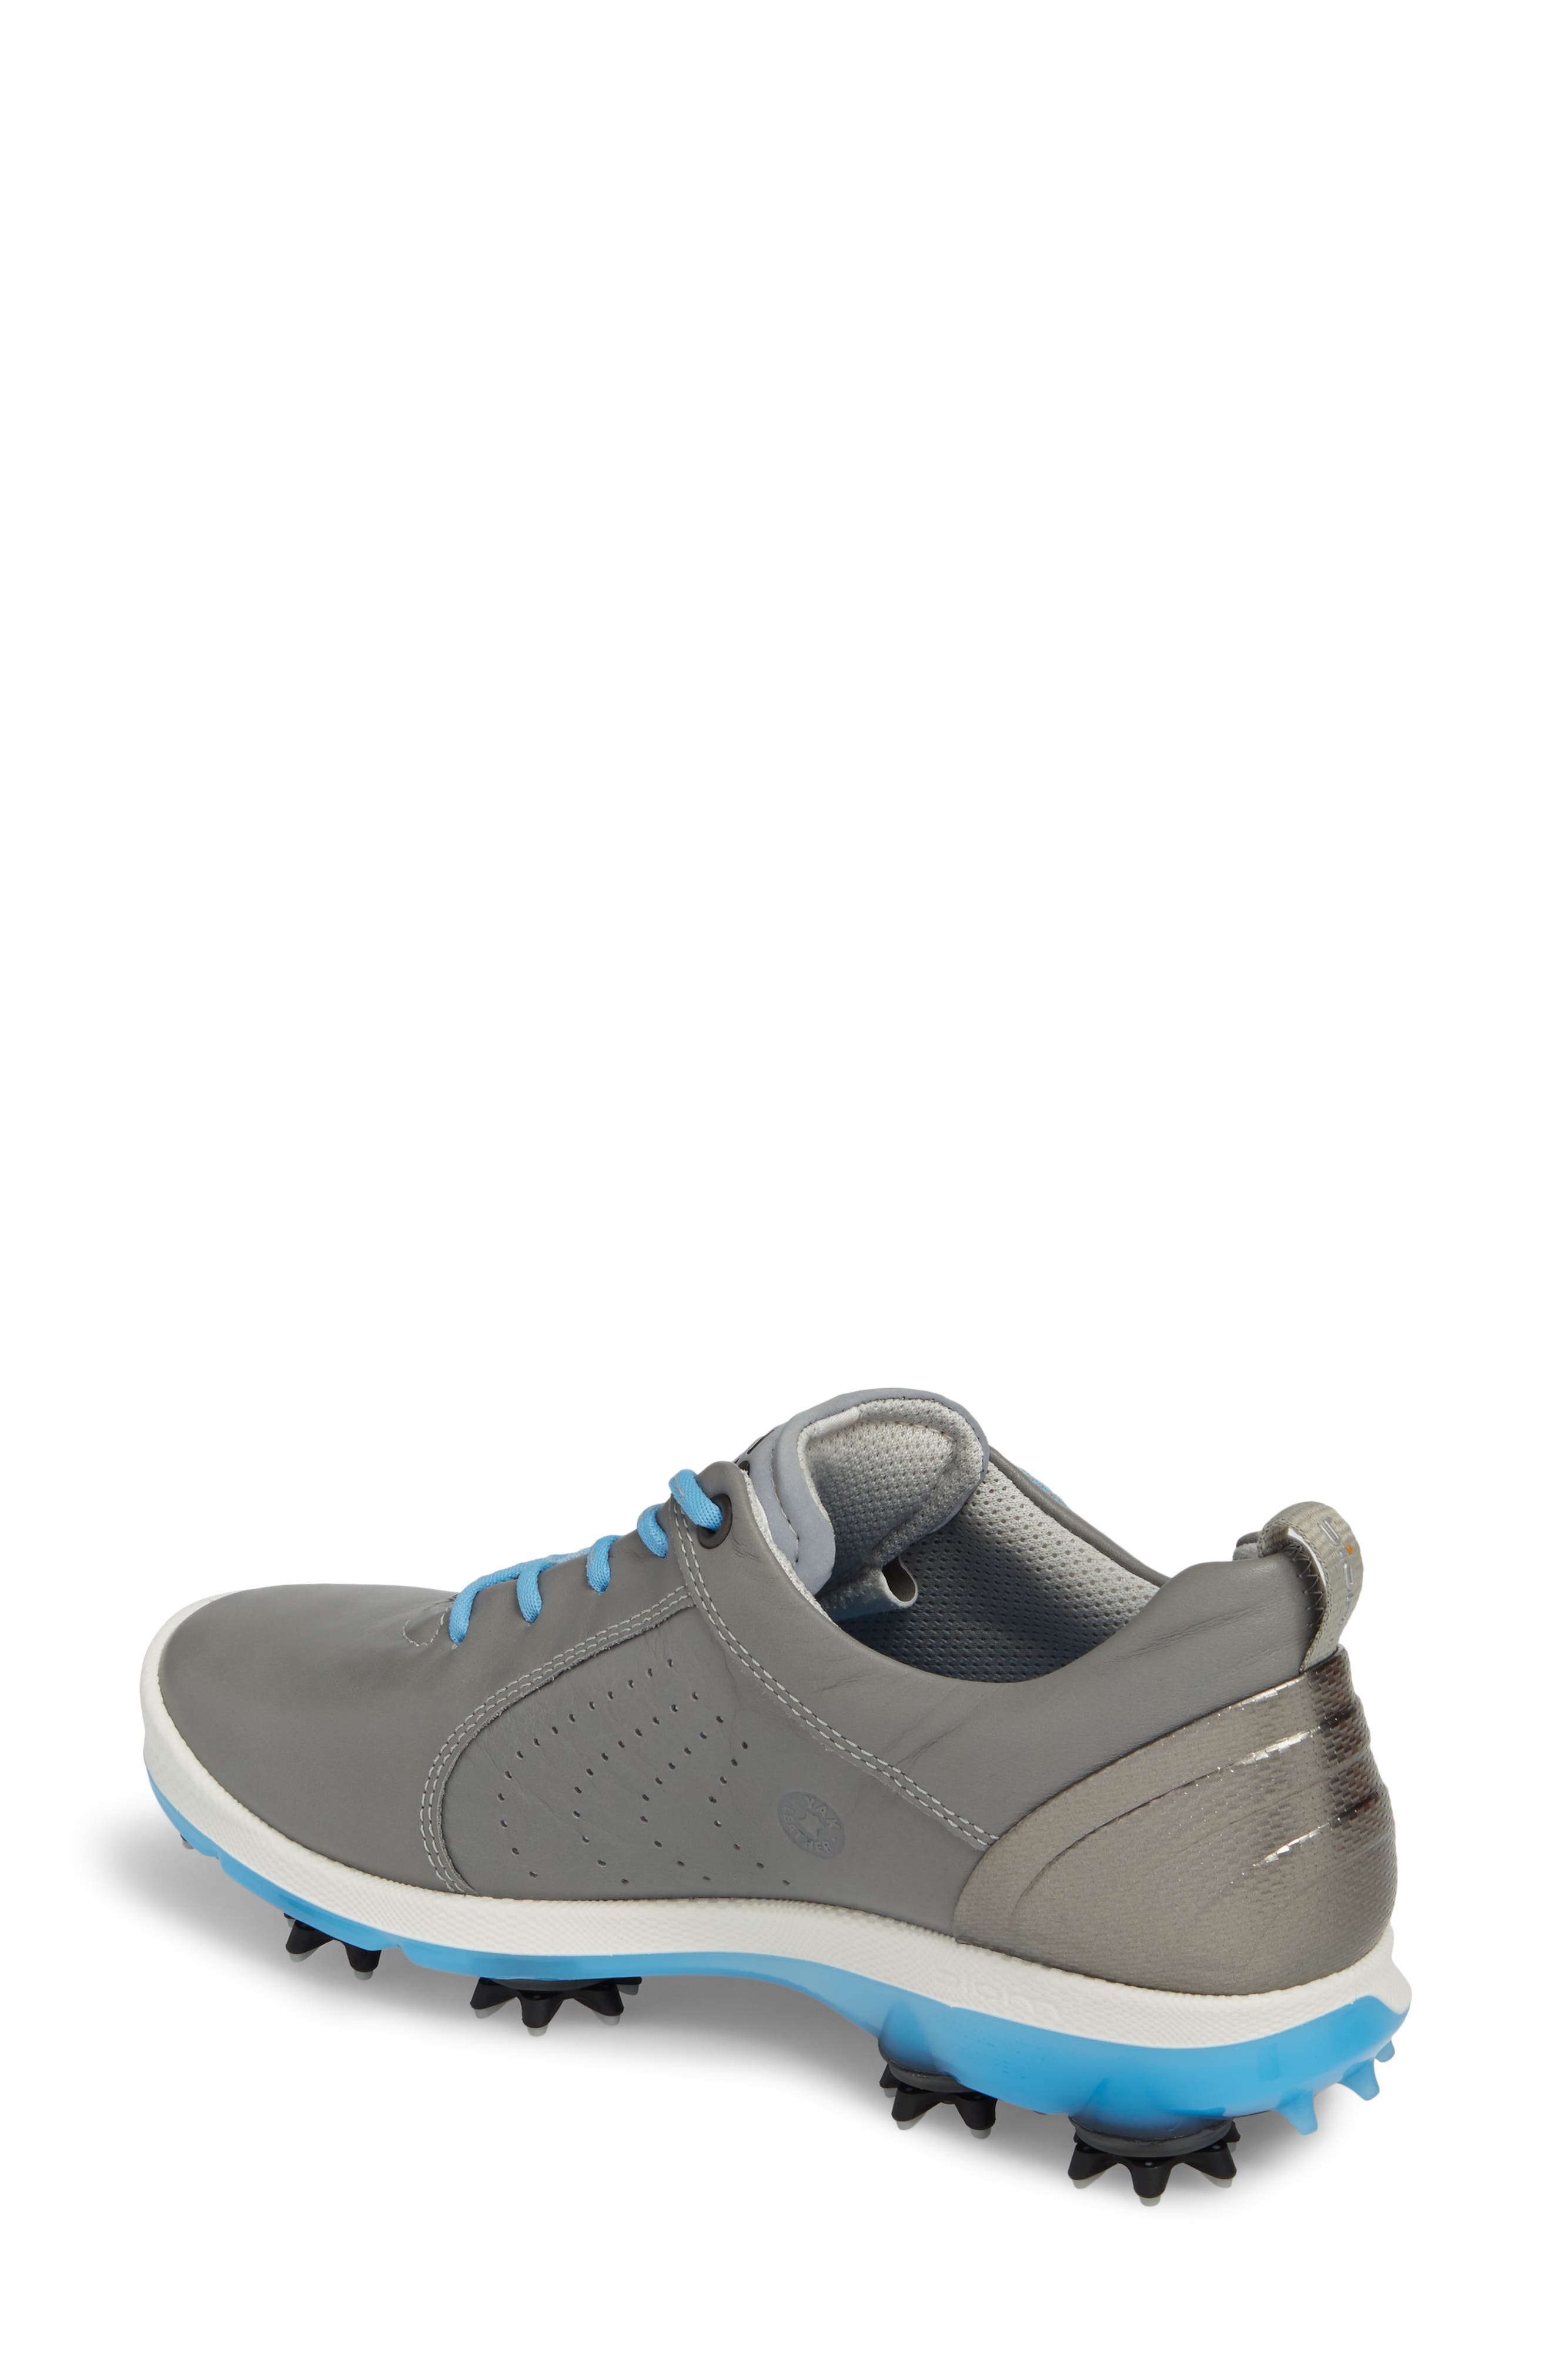 BIOM 2 Waterproof Golf Shoe,                             Alternate thumbnail 2, color,                             Wild Dove/ Sky Blue Leather